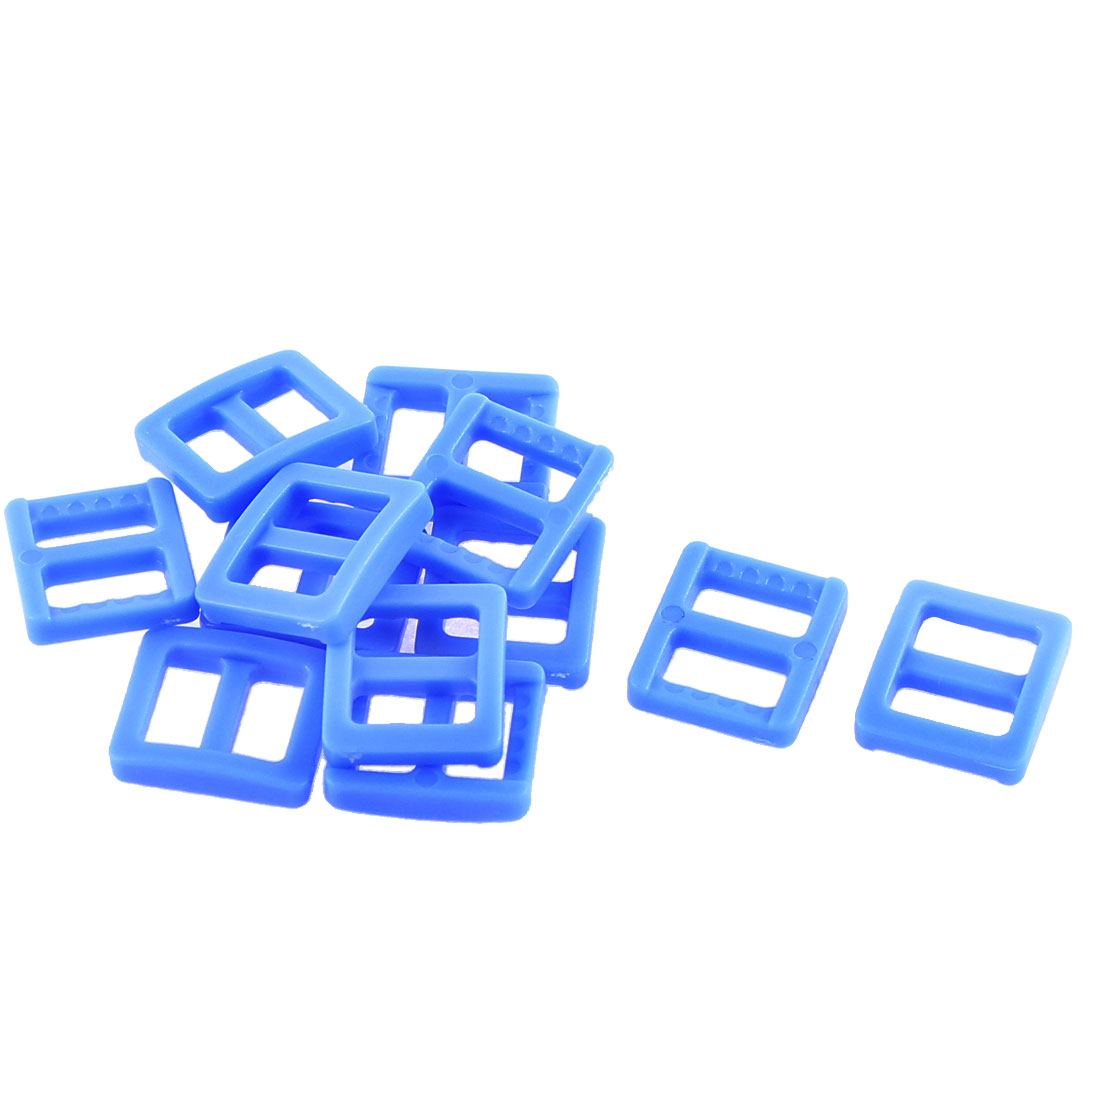 Webbing Bag Plastic Replacement Tri Glide Buckle Strap Keeper Blue 12 Pcs